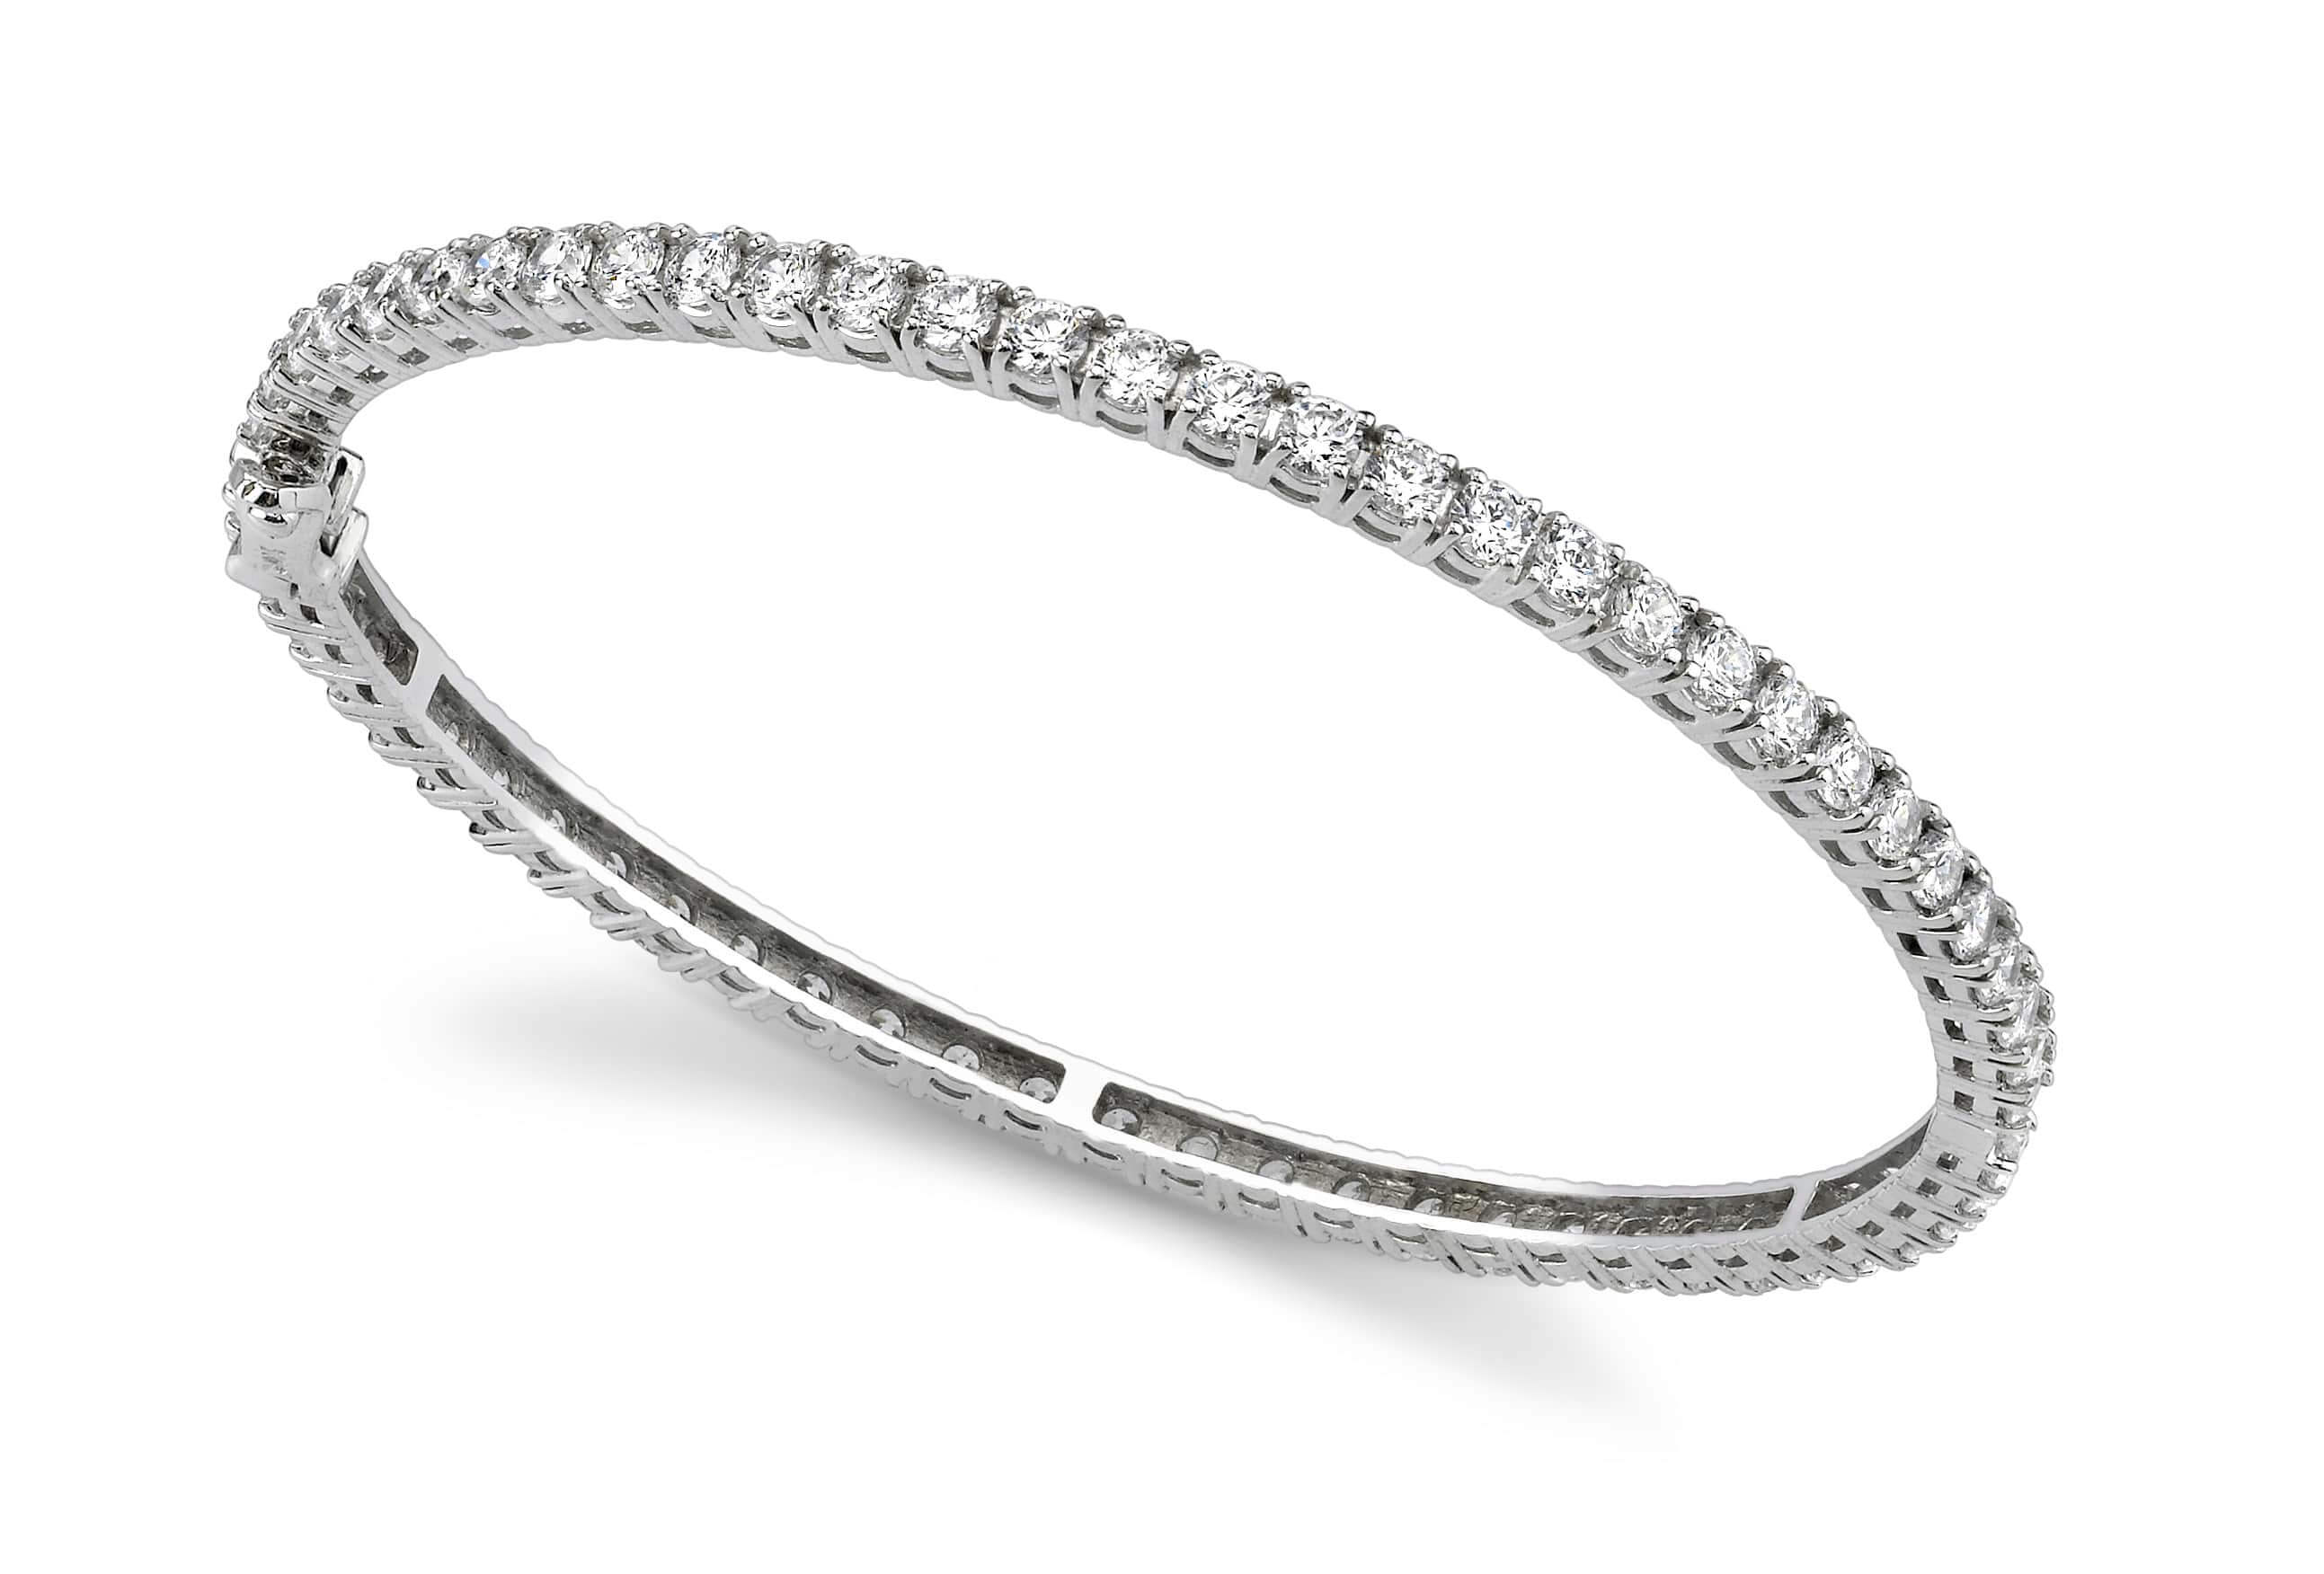 ct pav white radiance goo tw bangle ideas pave diamond gold unusual bangles inspiration in bracelet